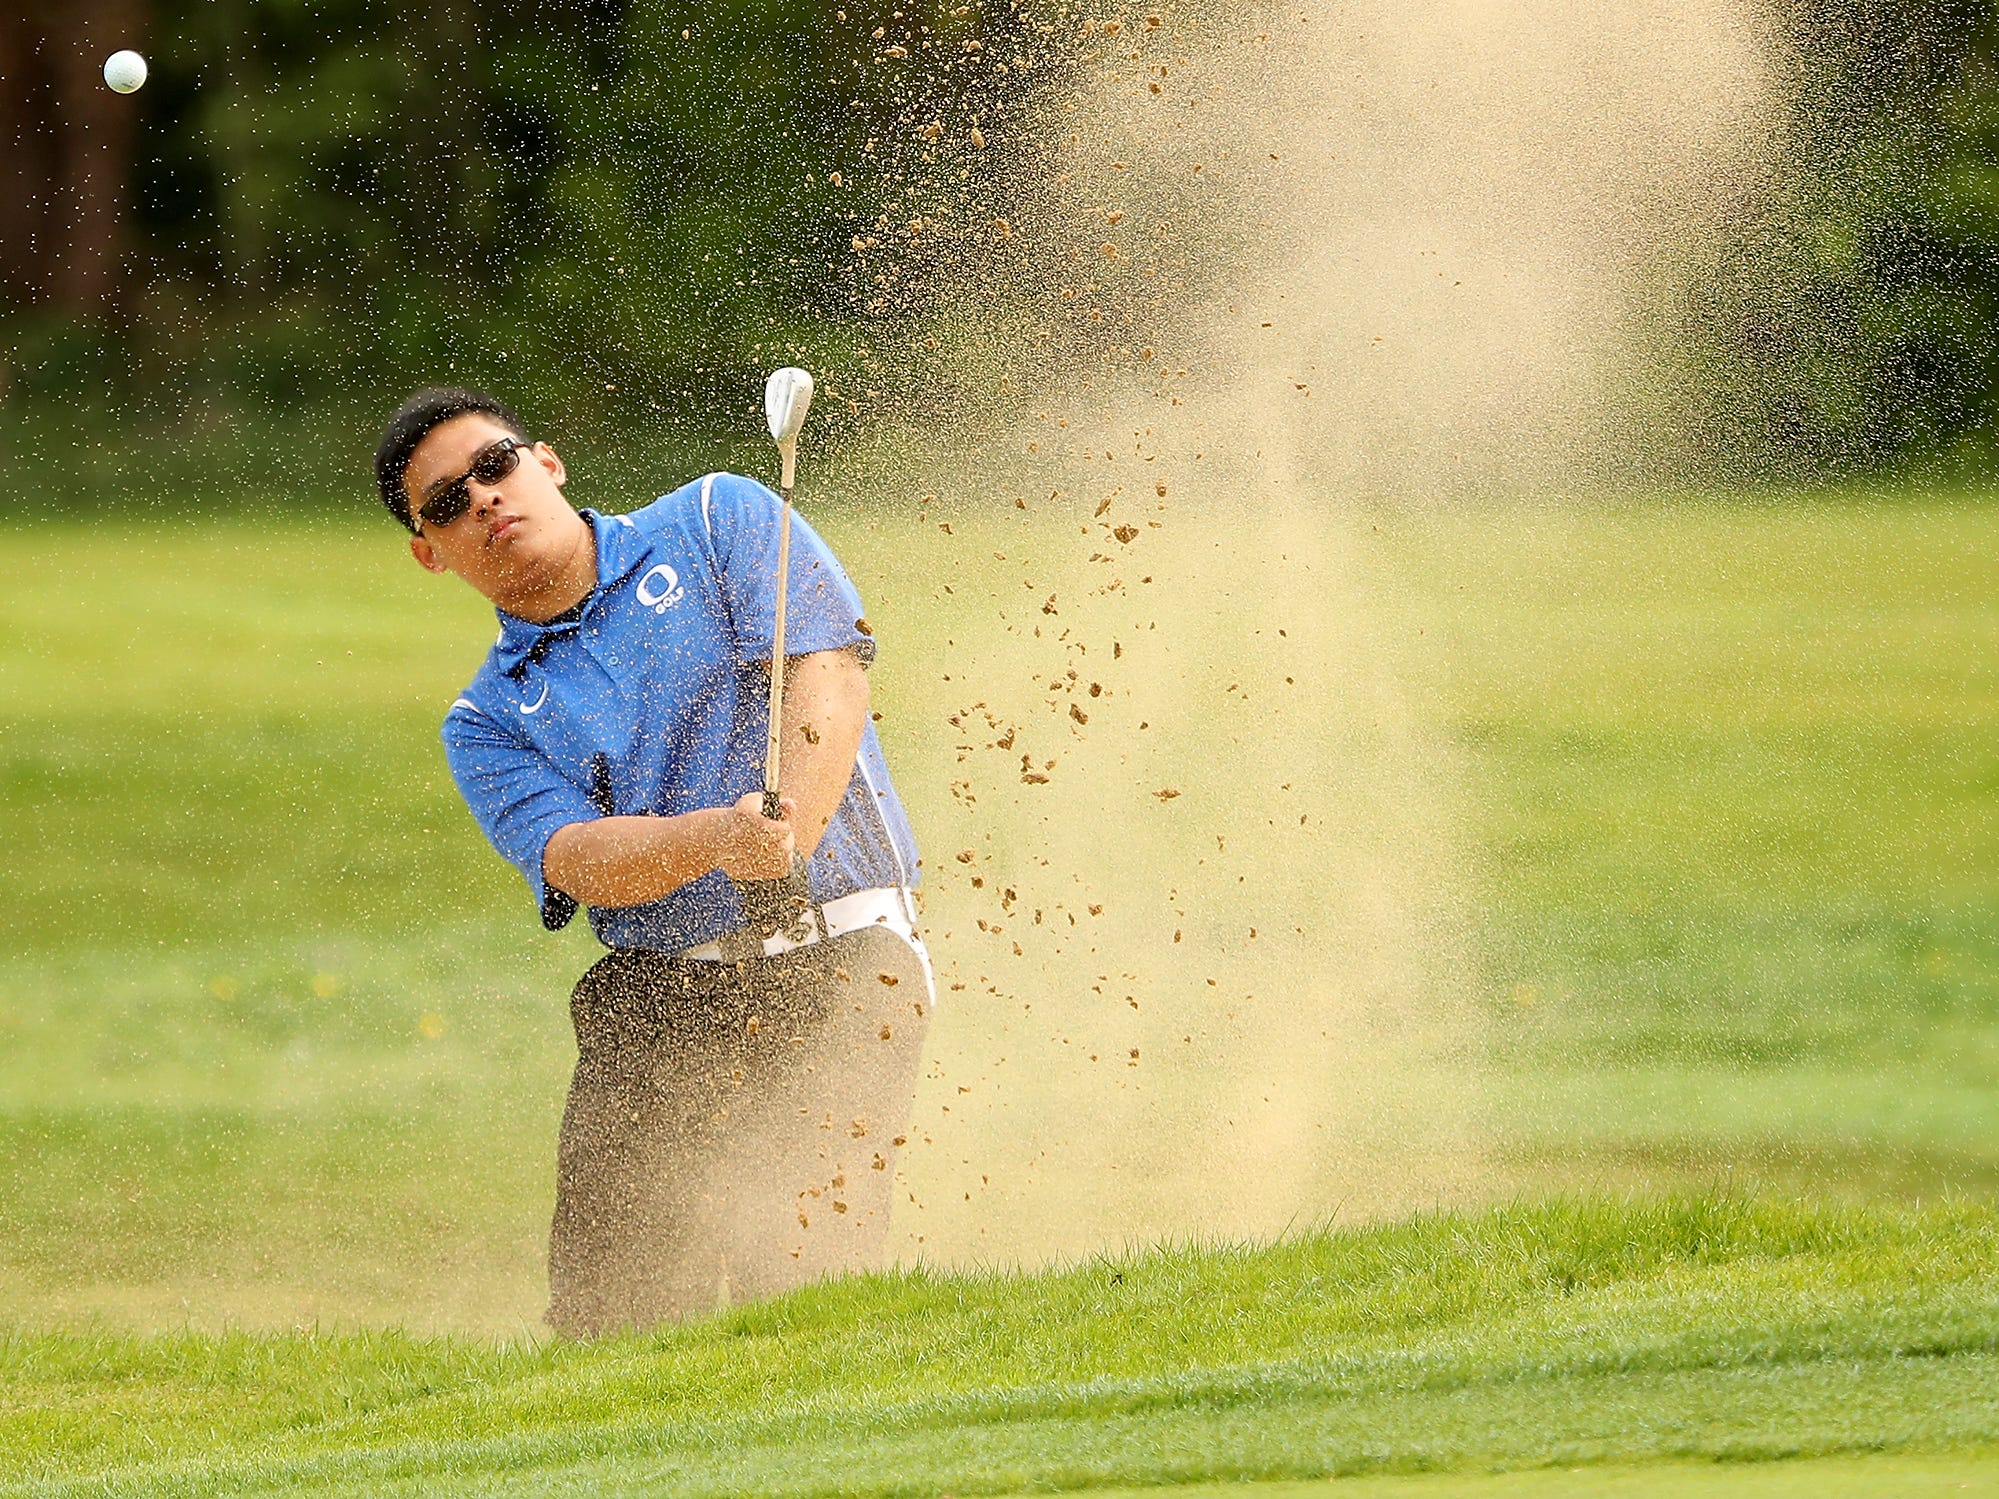 The sand flies as Olympic's Adrian Basaliza hits a shot out of a bunker during the Tim Higgins Memorial Golf Tournament at the Kitsap Golf & Country Club in Bremerton on Thursday, April 25, 2019.